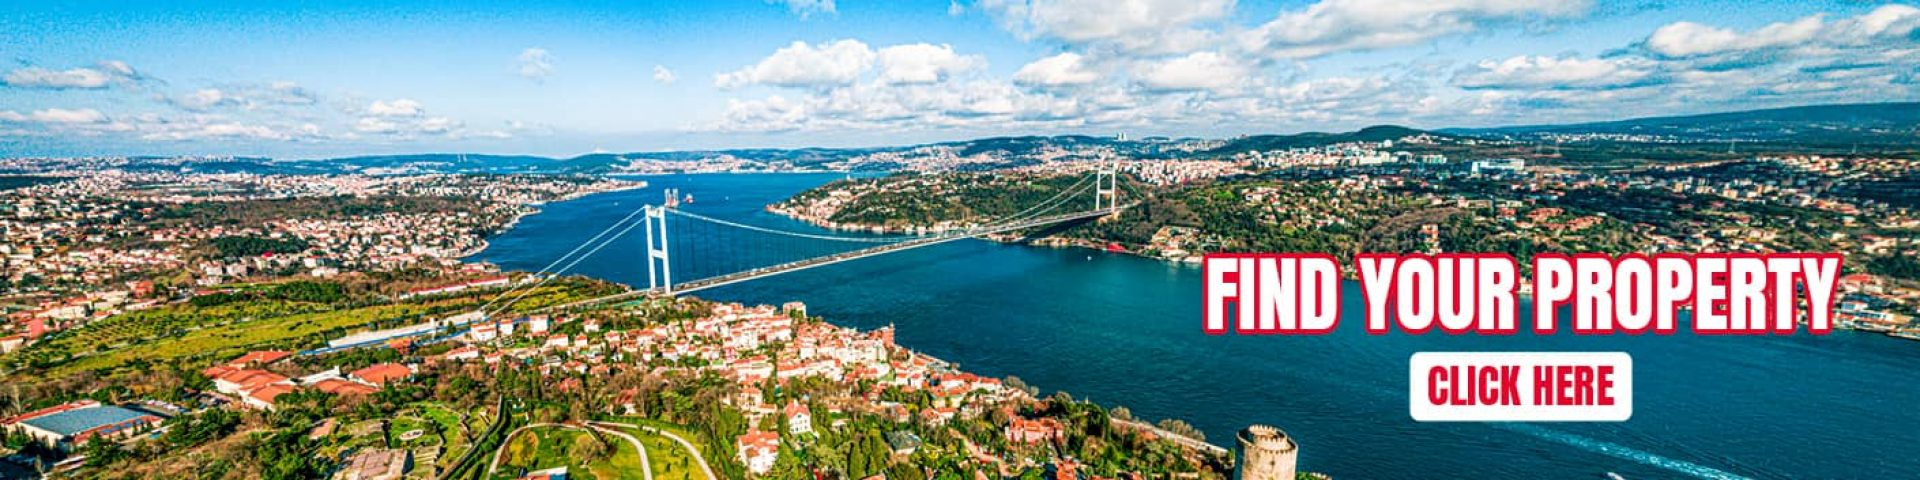 Property For Sale in Turkey | Istanbul Property